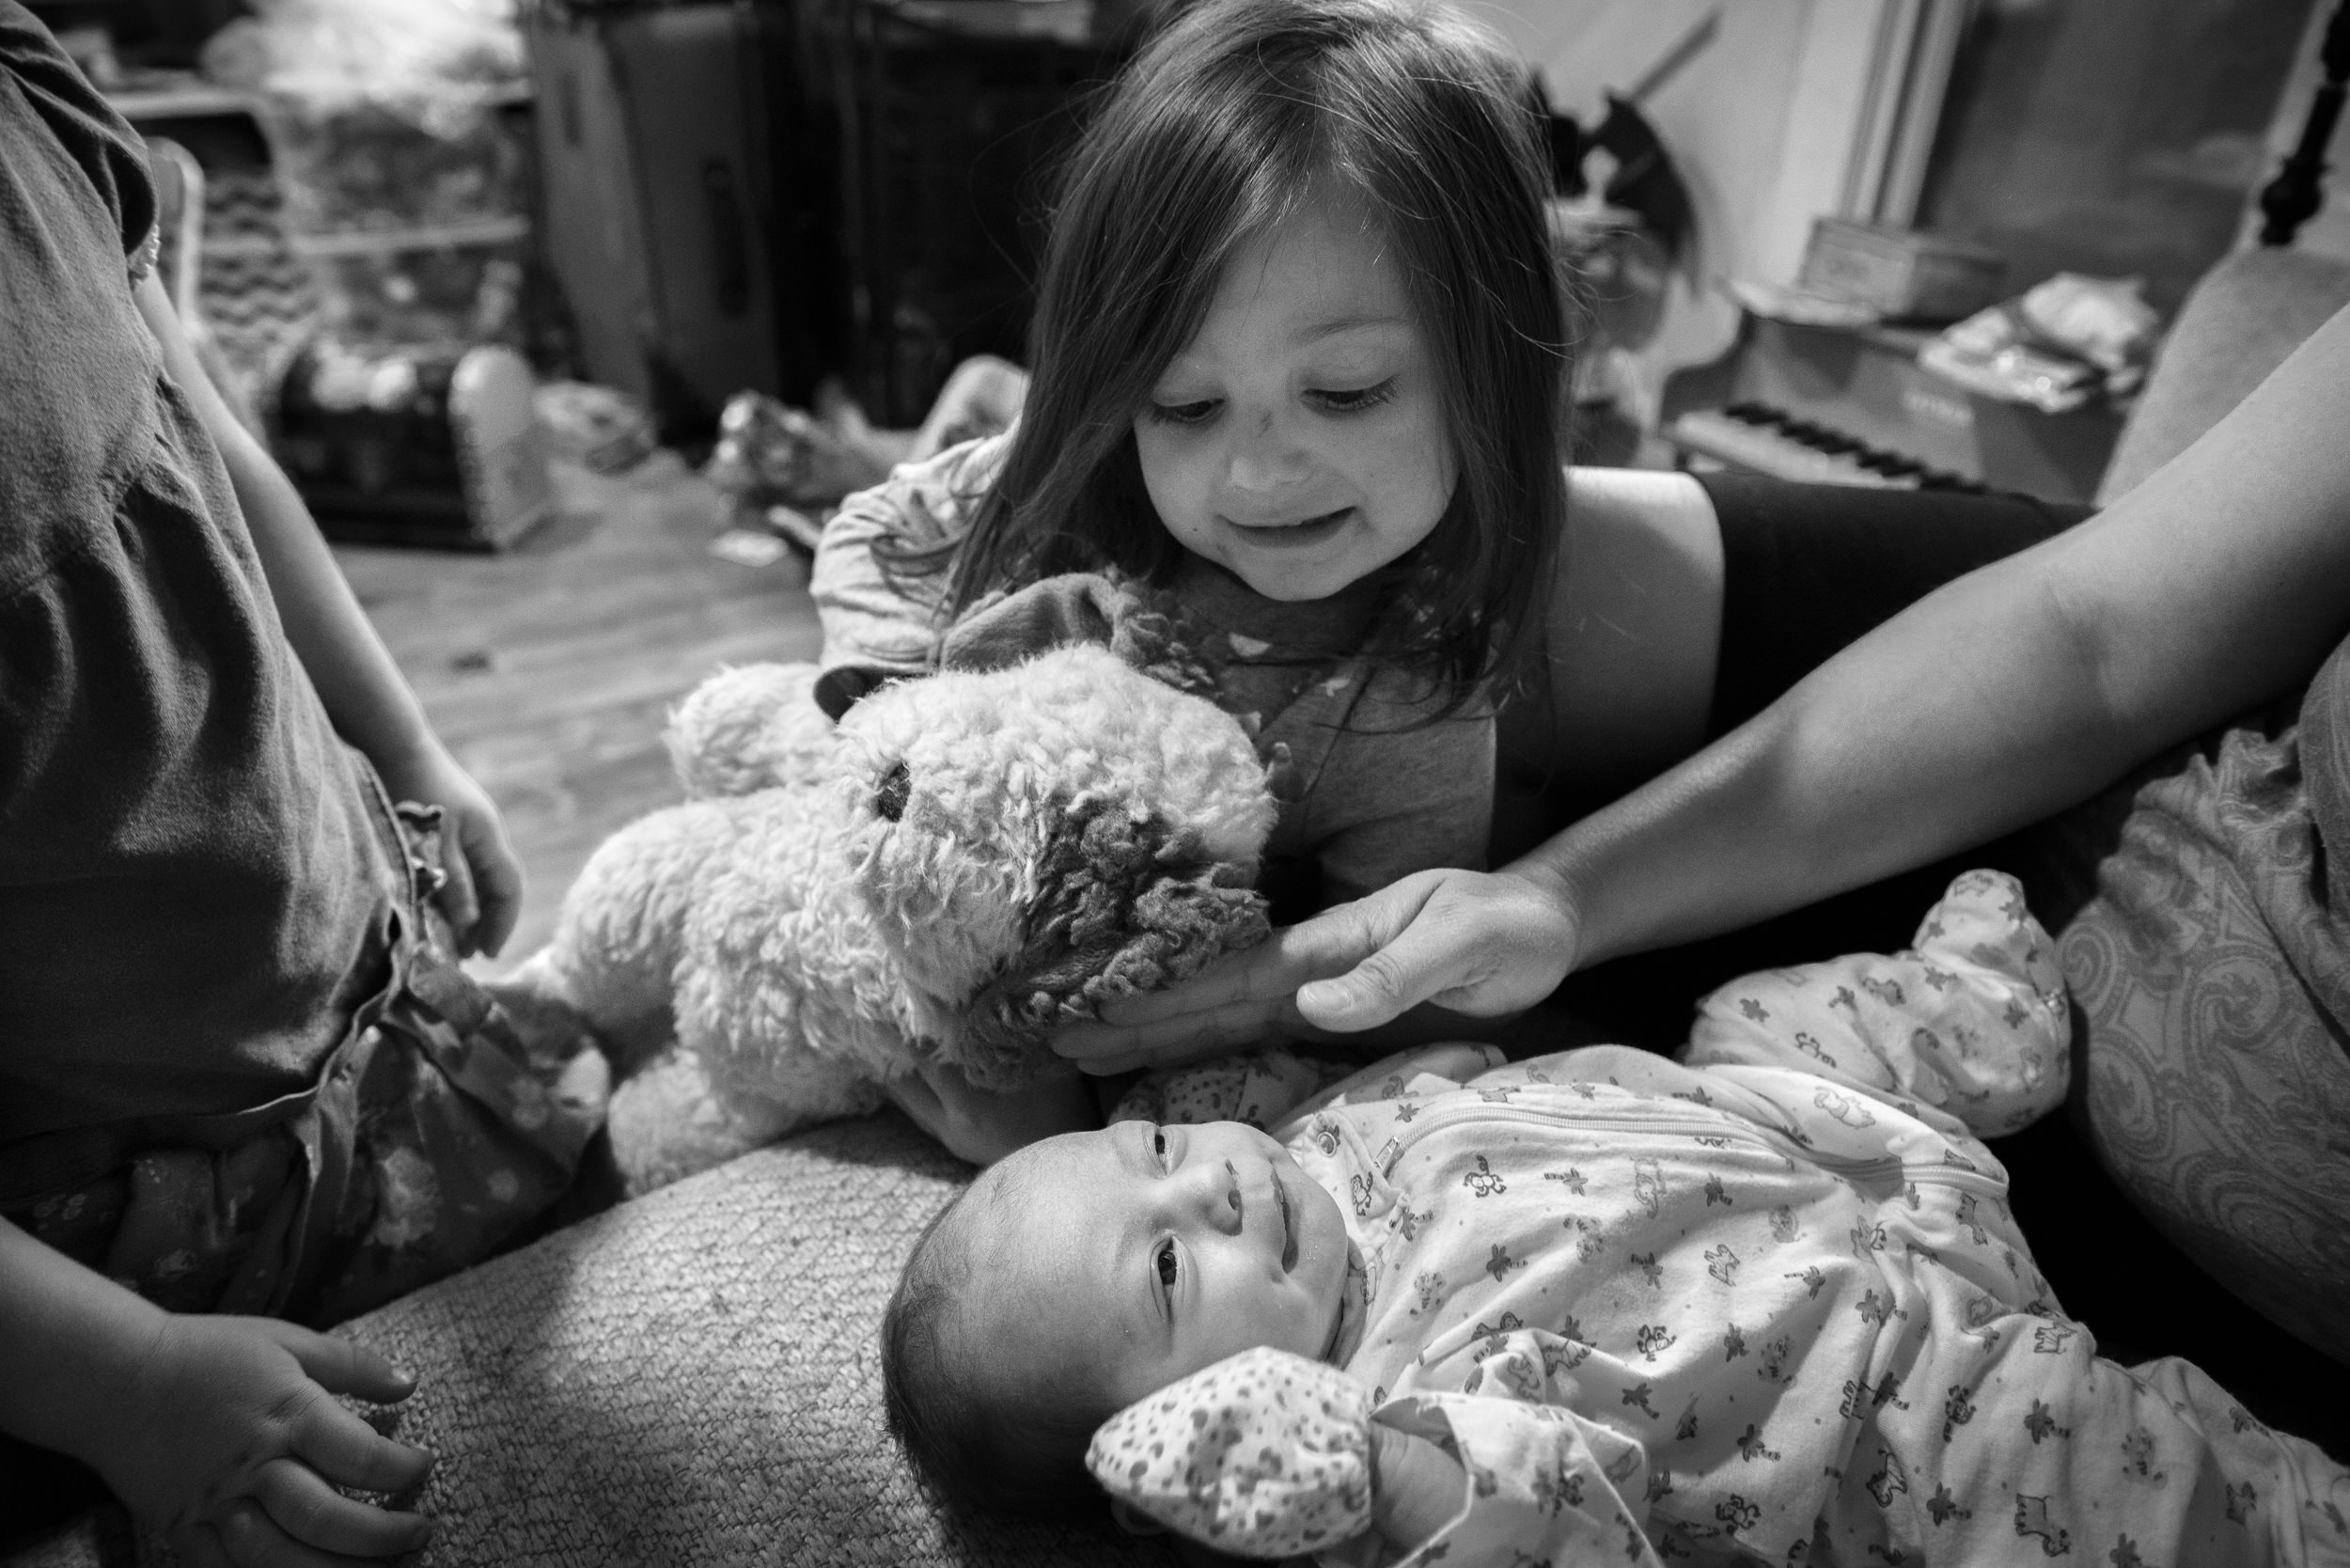 Black and White Documentary Newborn Photography in Denver, Colorado - sister looking at baby